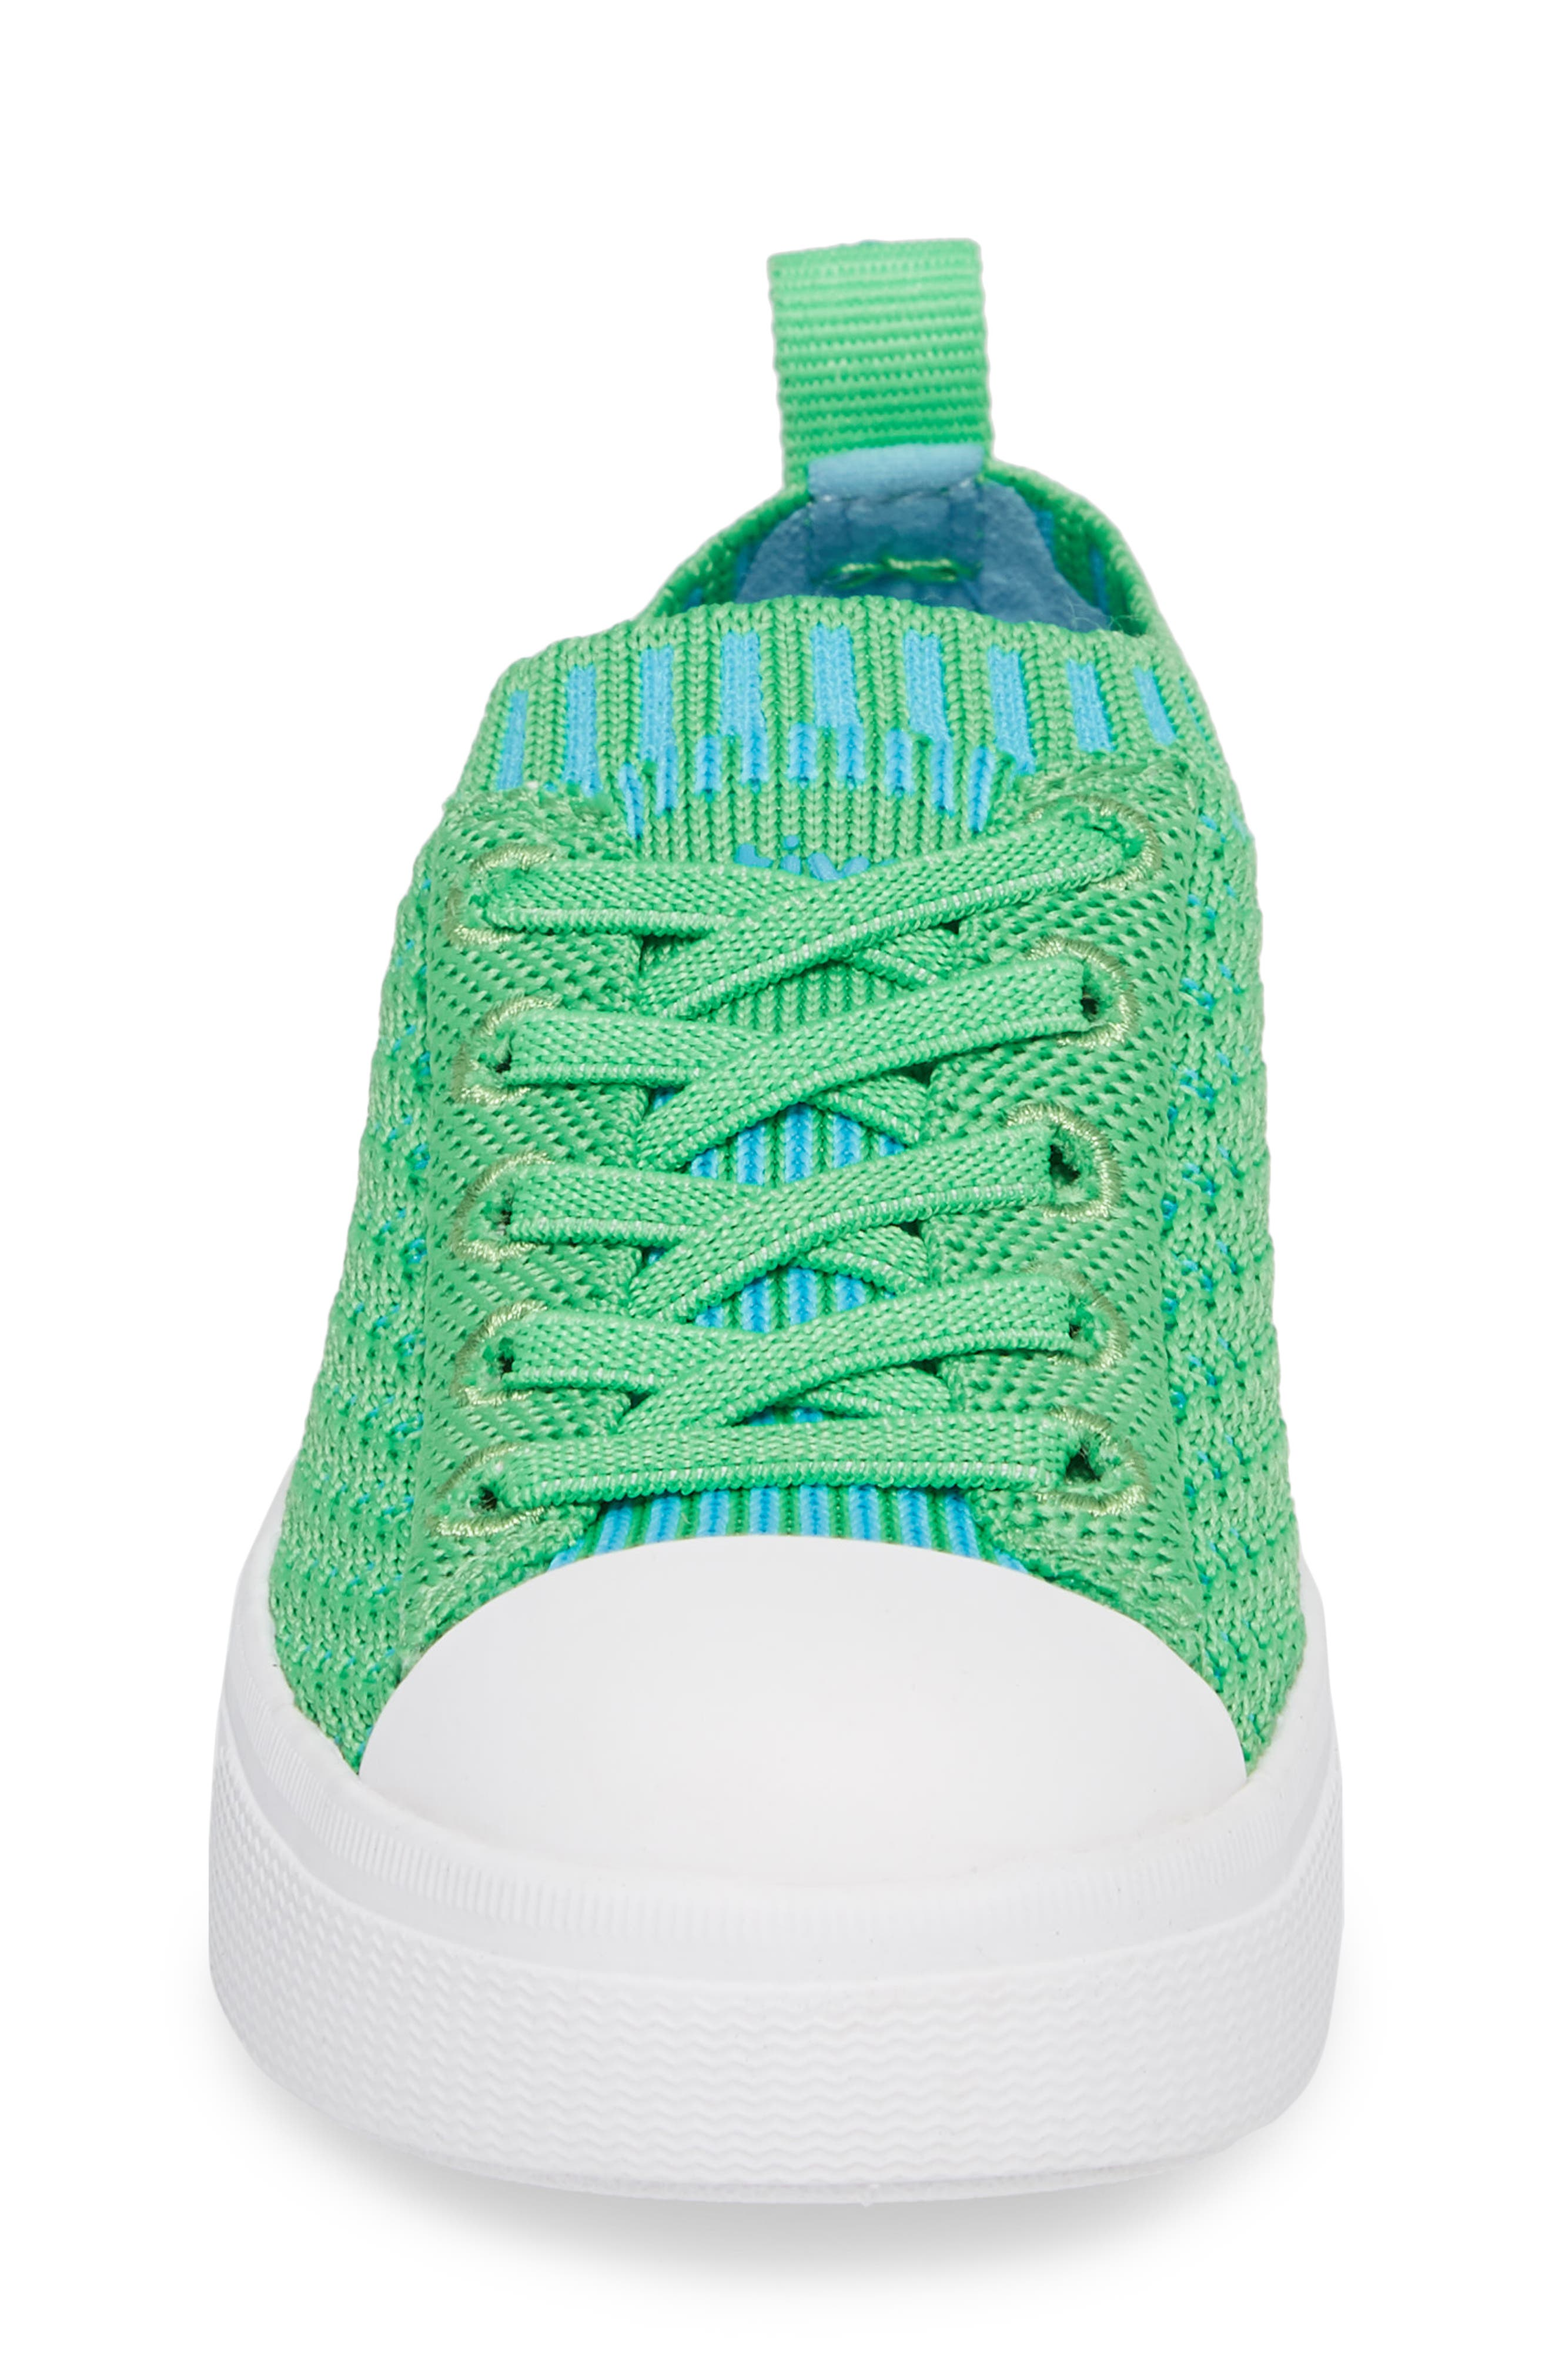 Native Jefferson 2.0 LiteKnit Sneaker,                             Alternate thumbnail 4, color,                             GRASS GREEN/ SHELL WHITE